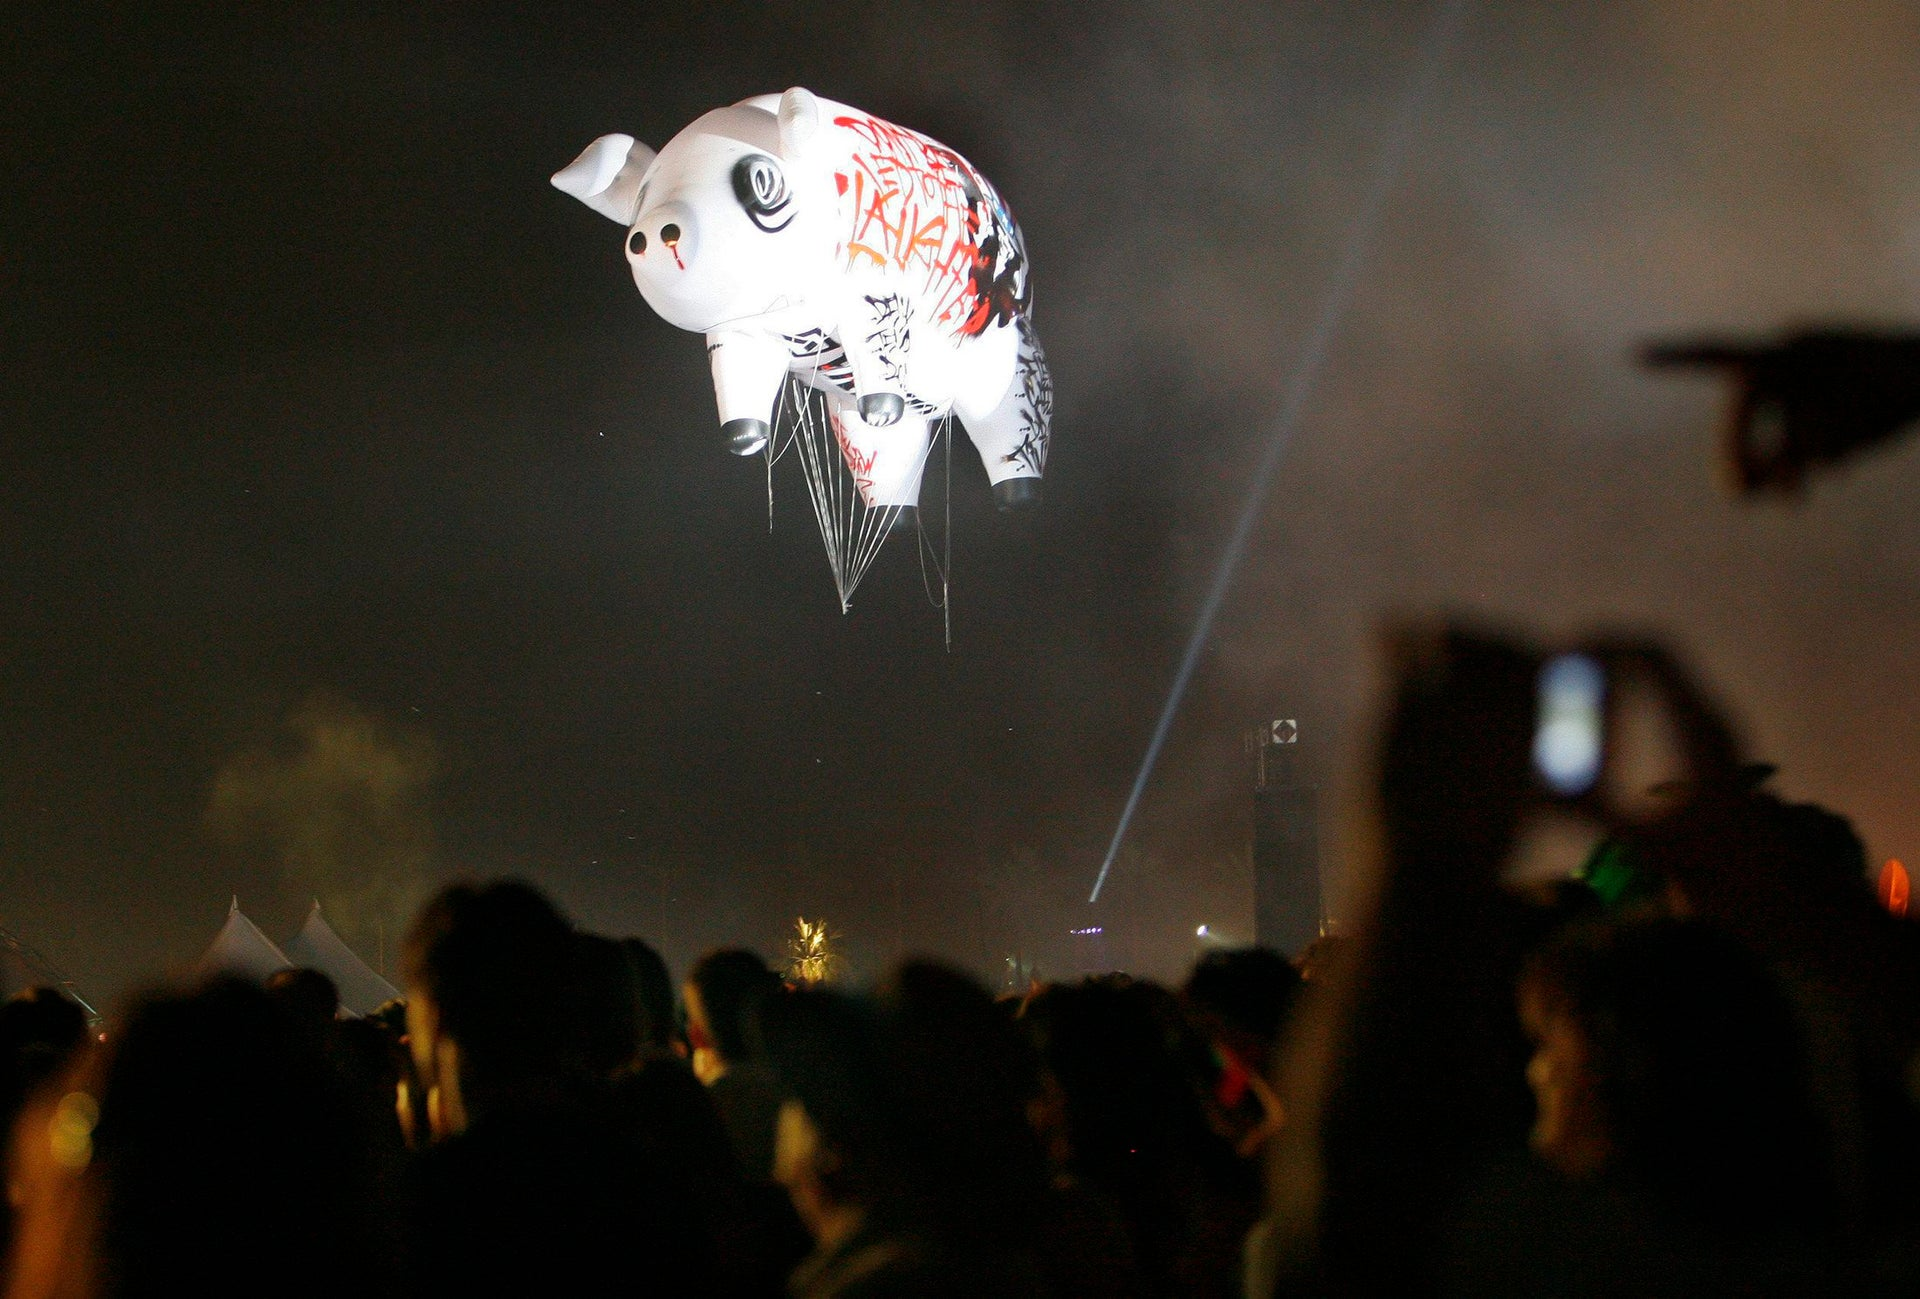 A pig-shaped balloon is seen in the sky as Roger Waters performs at the Coachella Music Festival in Indio, California April 27, 2008.